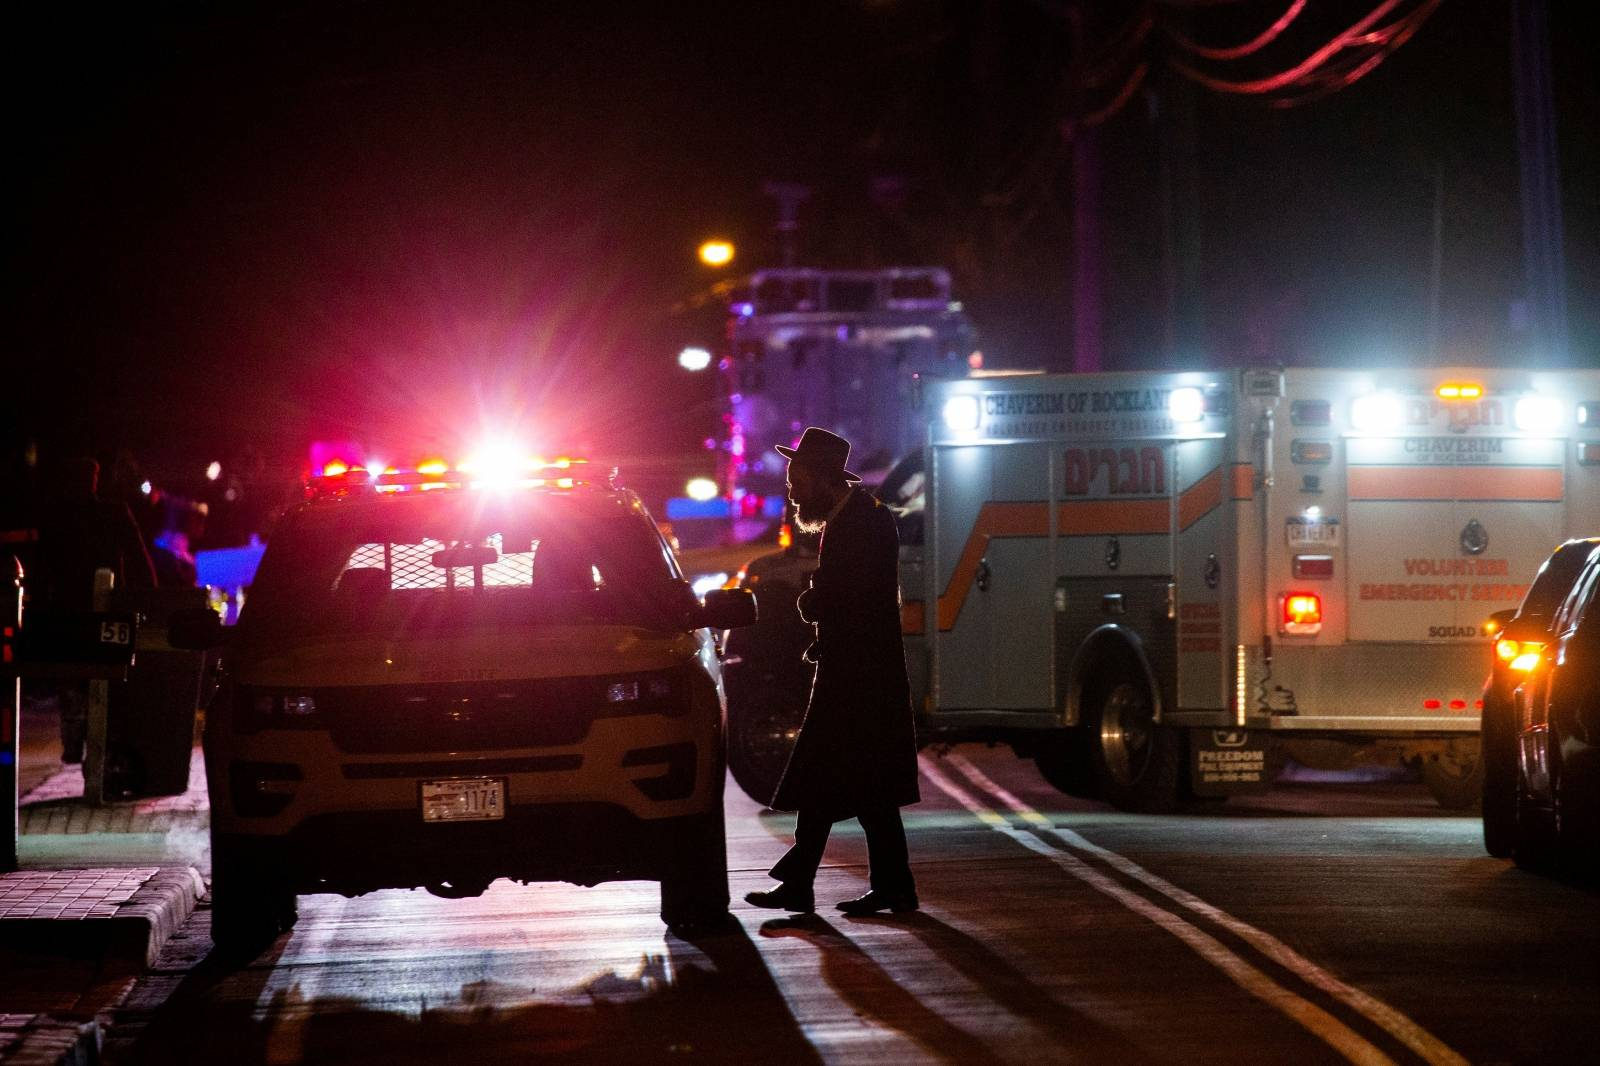 A Jewish man walks near the area where 5 people were stabbed at a Hasidic rabbi's home in Monsey, New York